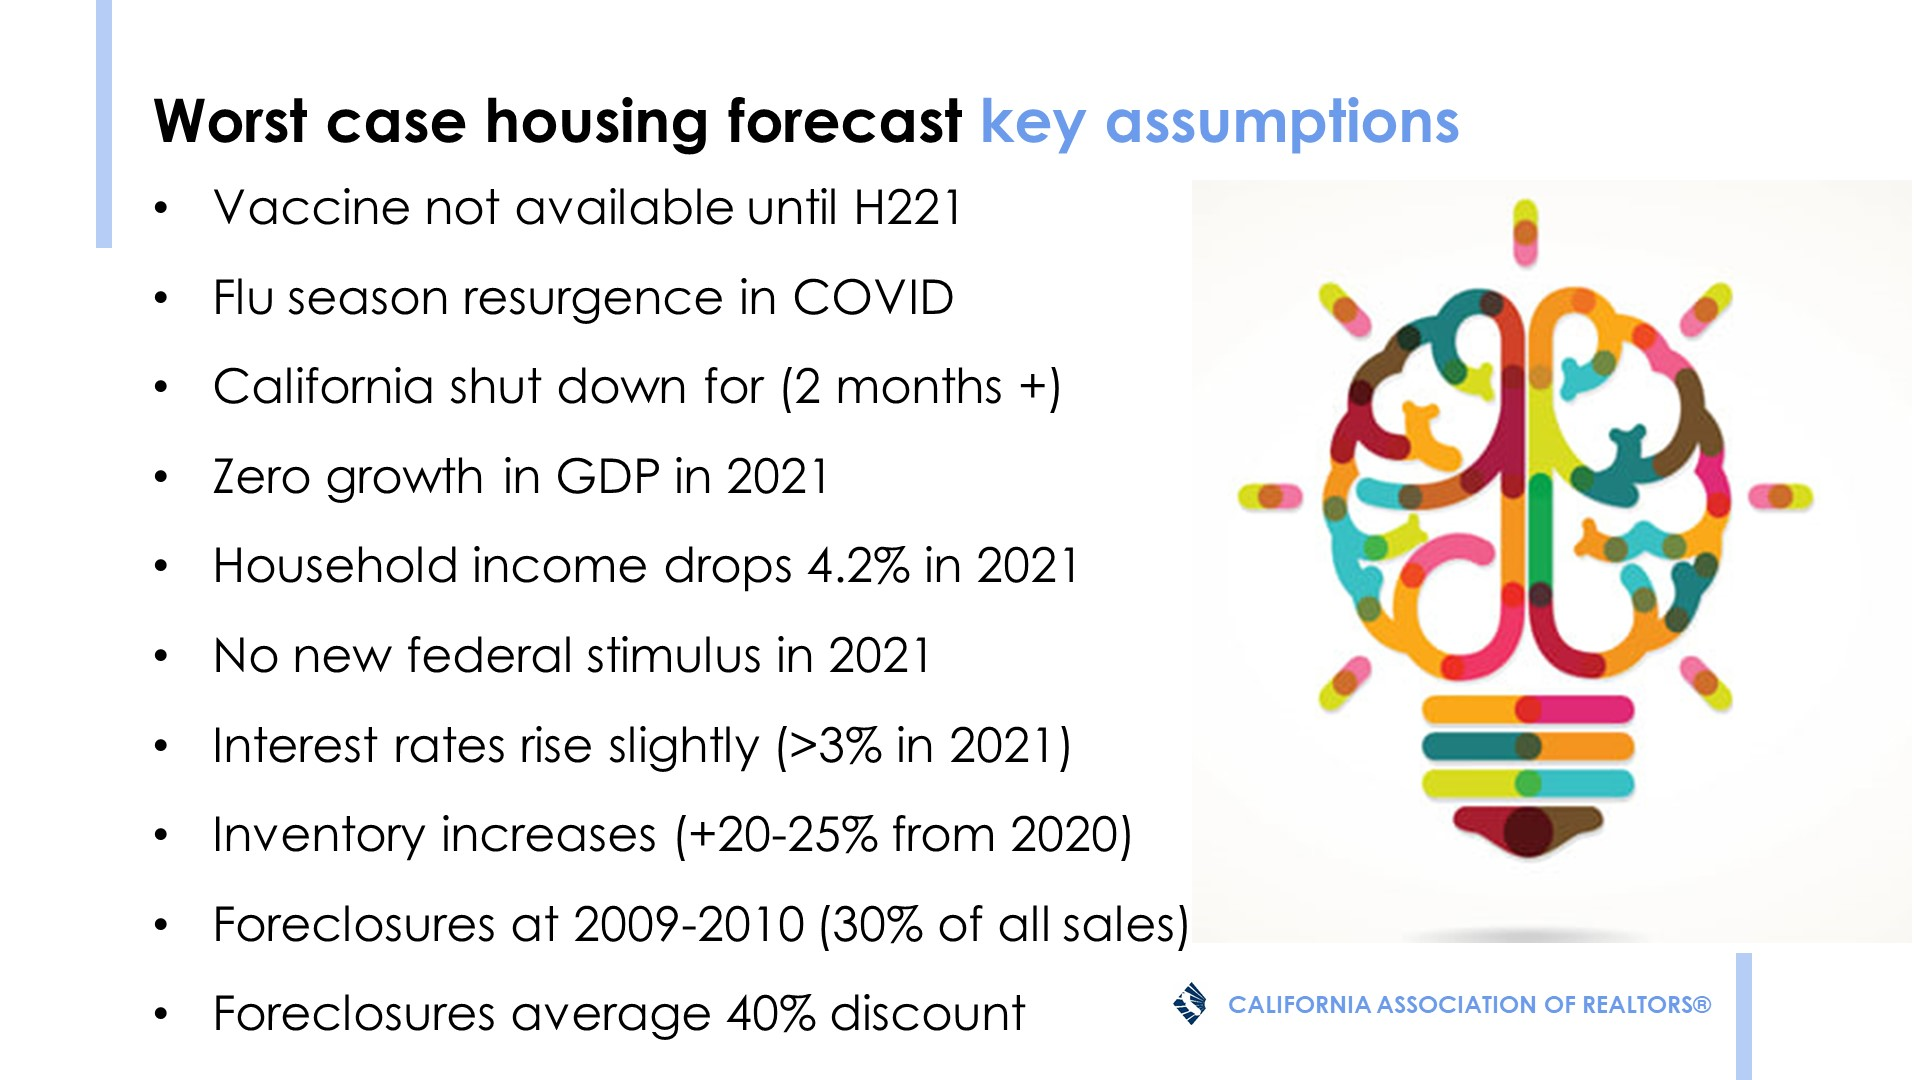 2021 the Greater Palm Springs Area Housing Market Forecast